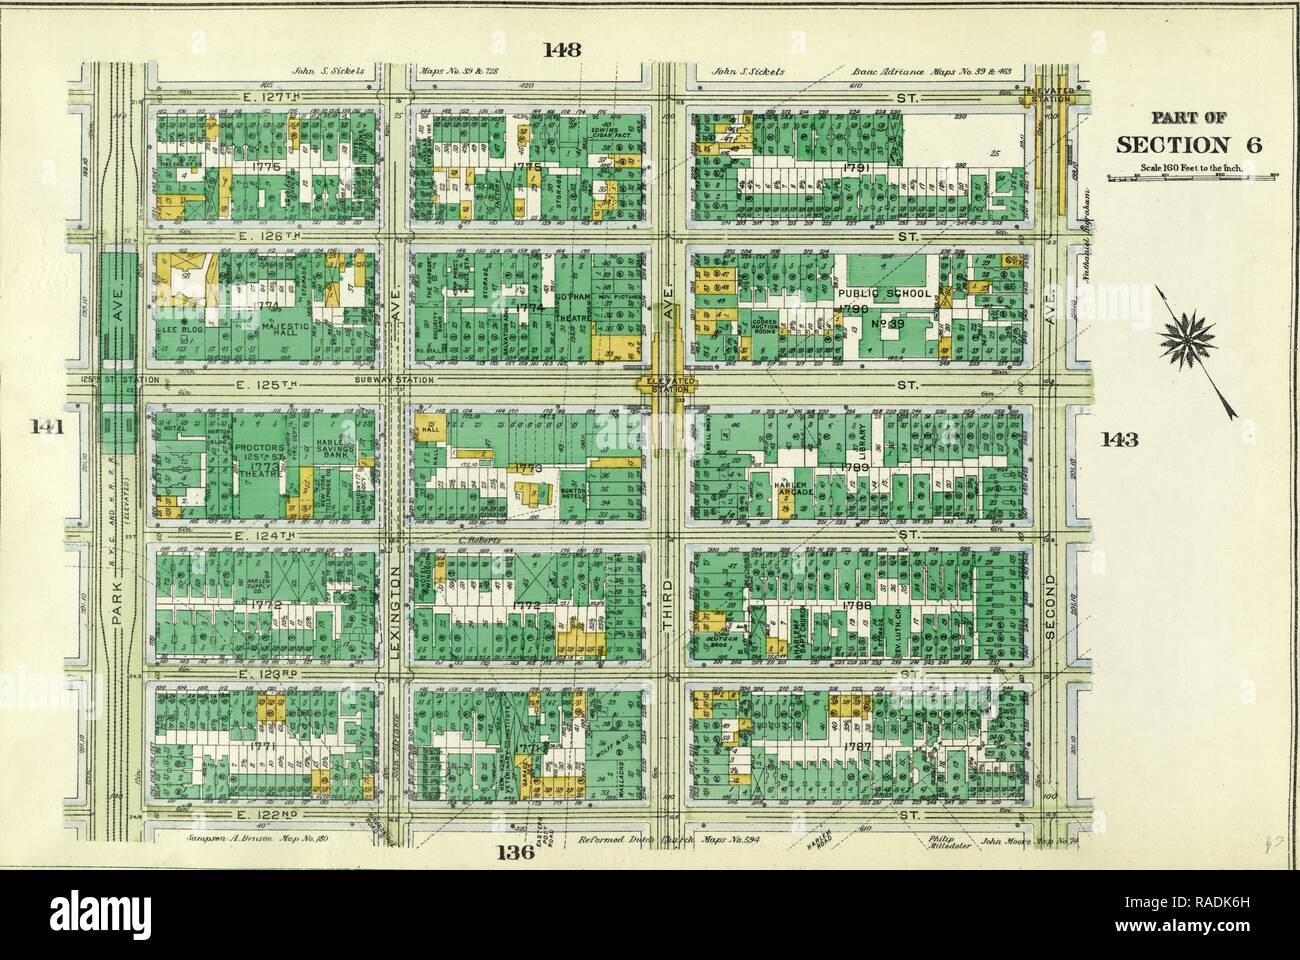 Plate 142: Bounded by E. 127th Street, Second Avenue, E. 122nd Street and Park Avenue. Reimagined by Gibon. Classic reimagined - Stock Image